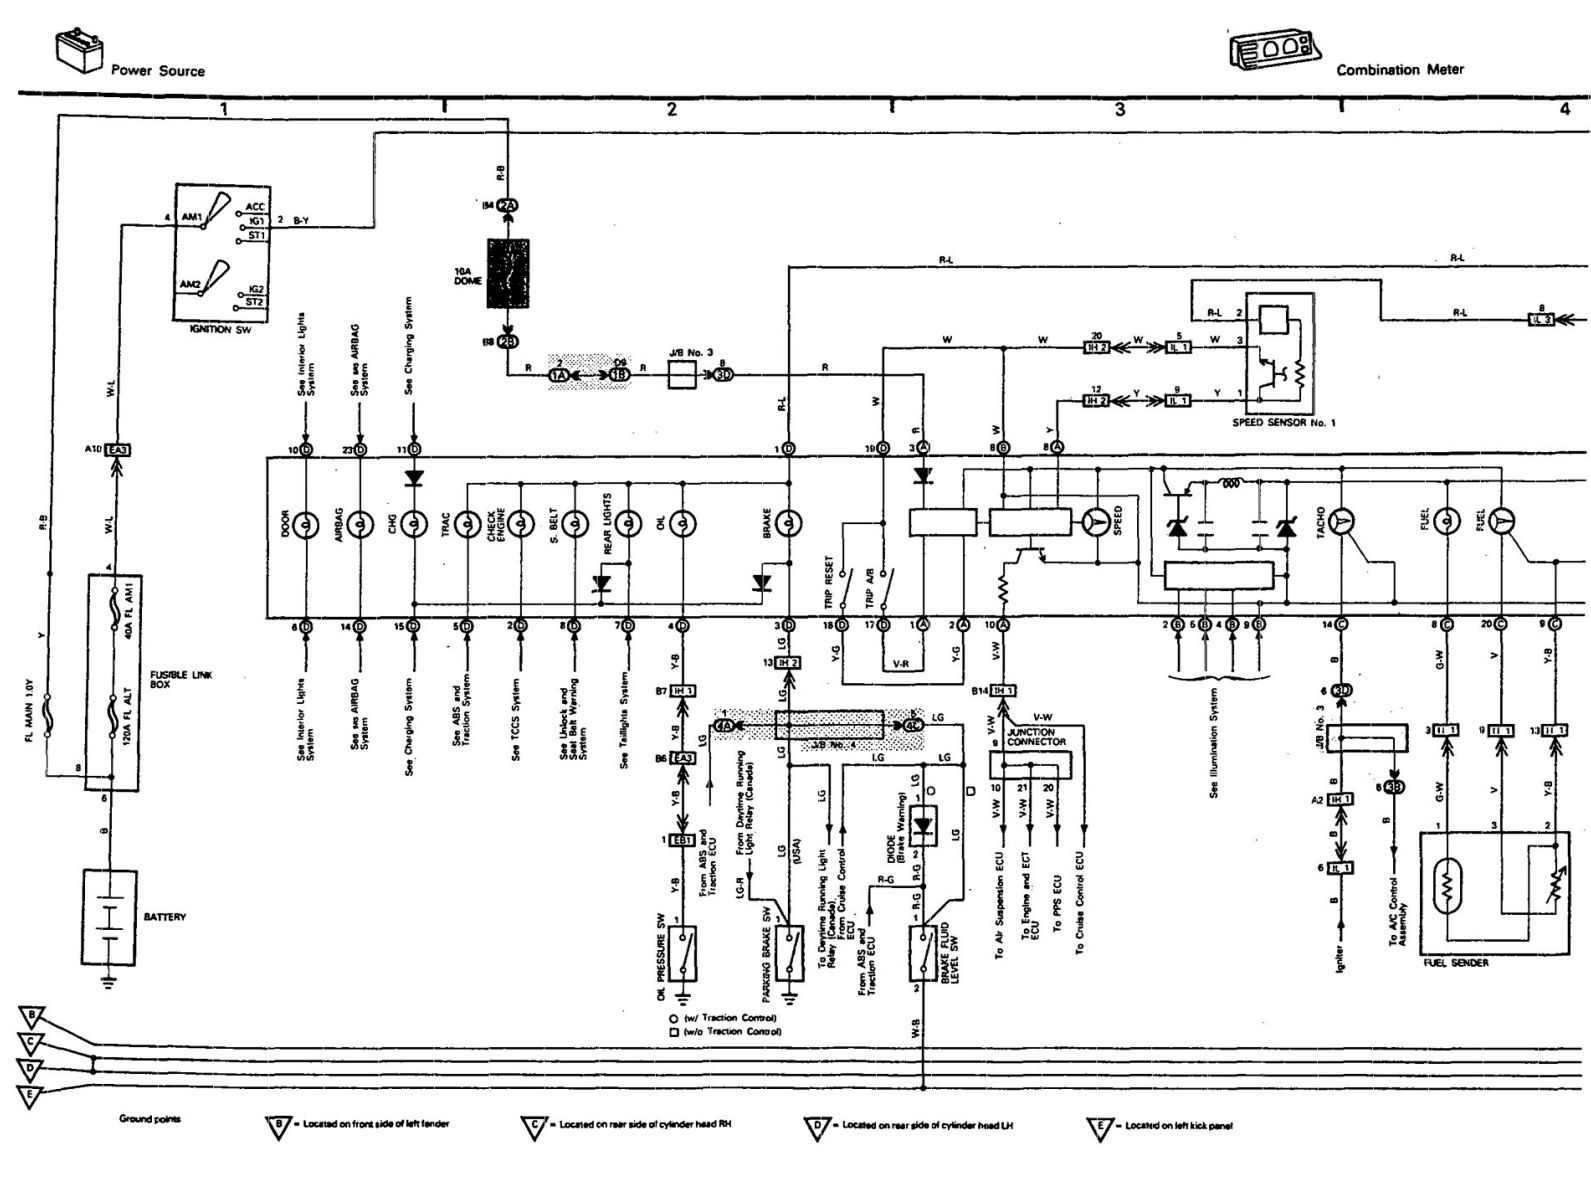 lexus ls400 wiring diagram mobile home electrical panel for instrument cluster 91 club